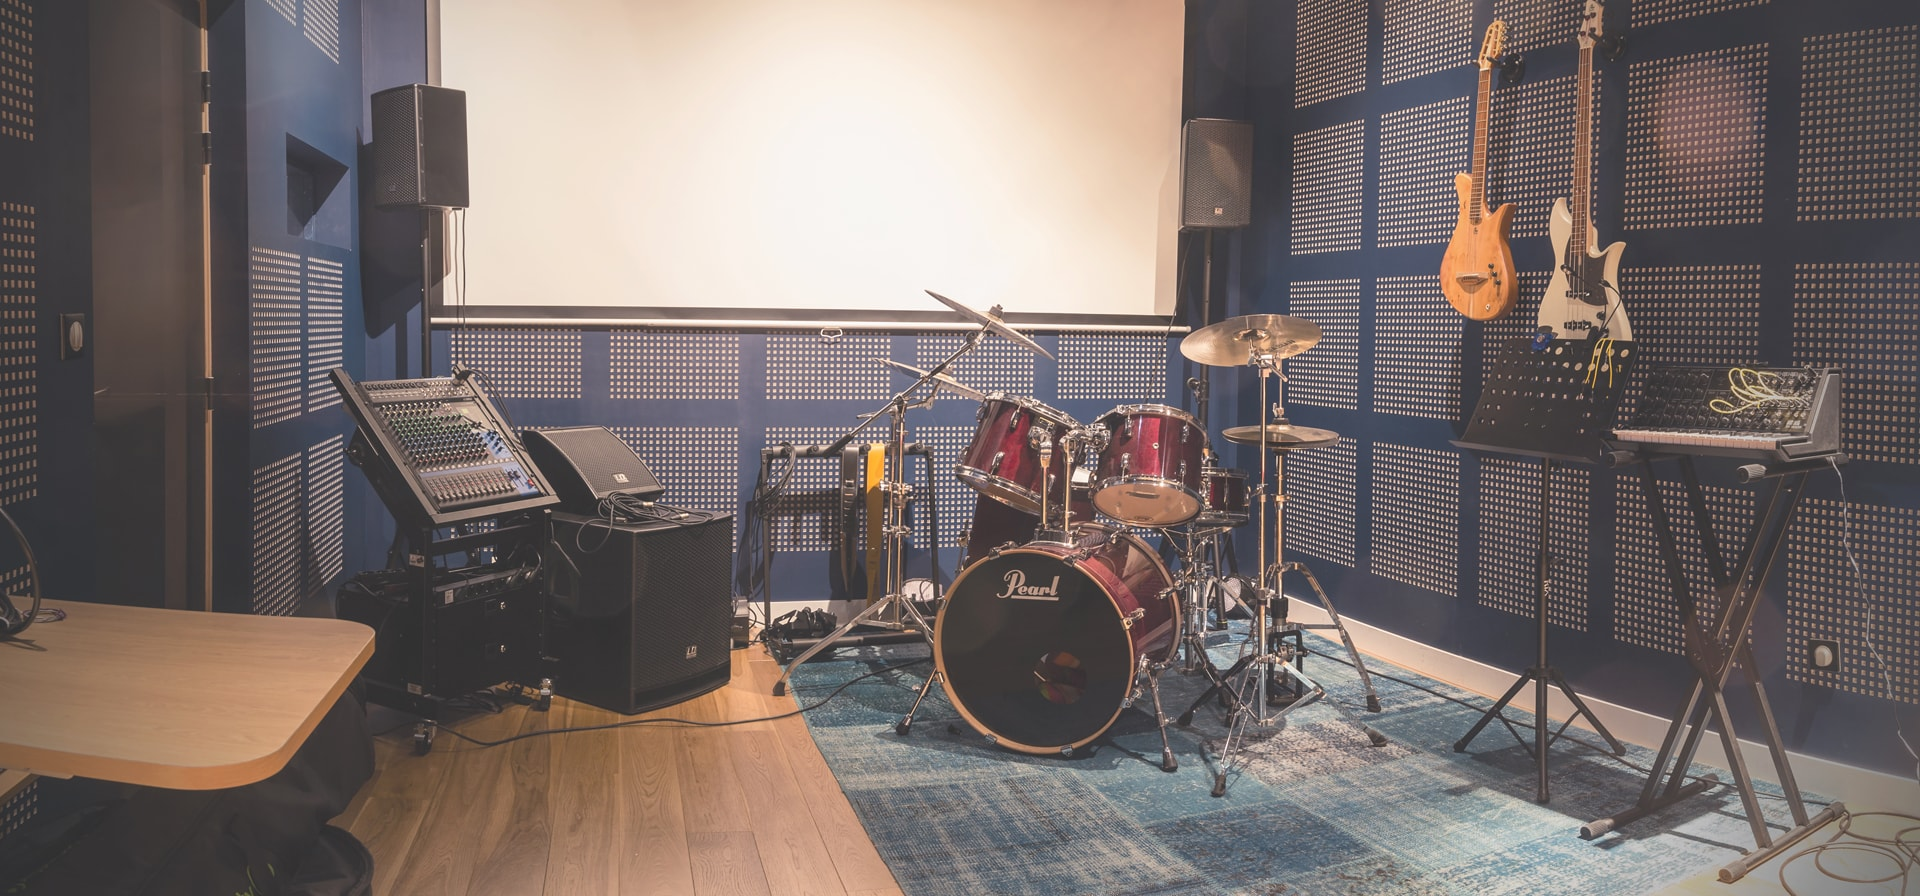 414/Photos/10_studio_de_musique/hotel-le-magic-hall-studio-musique--instruments-rennes-min.jpg